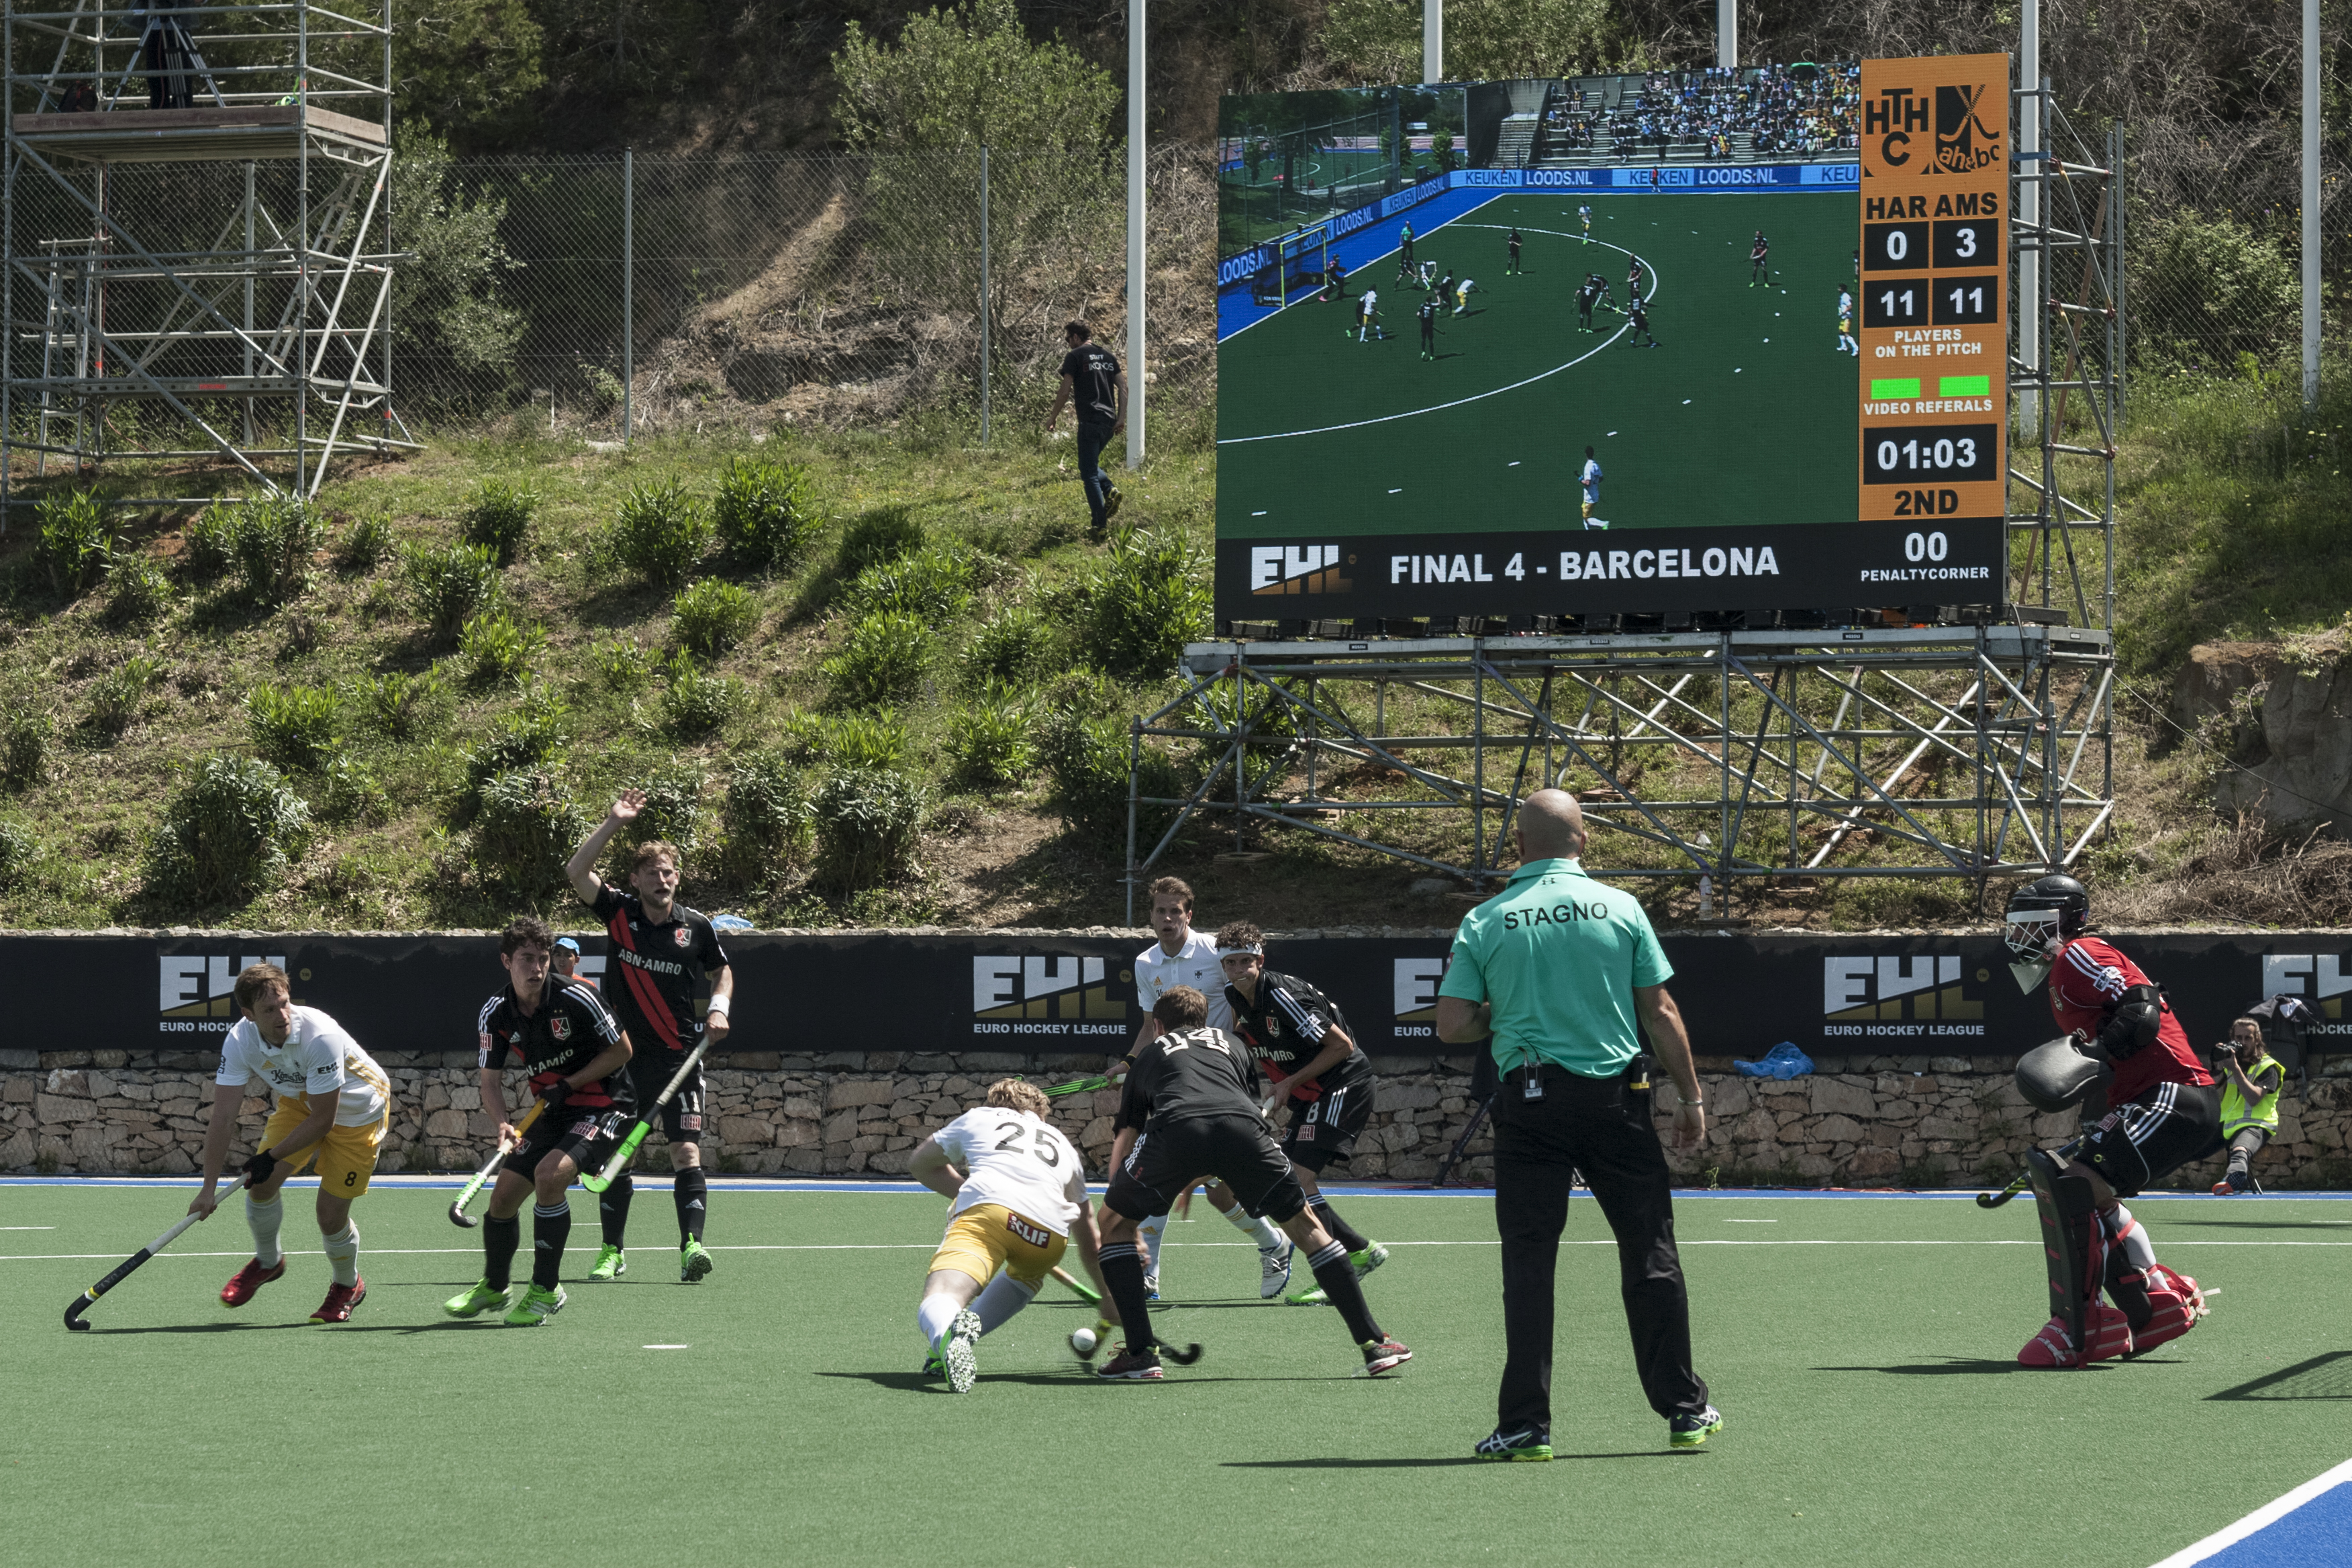 Hockey - Pantalla led - eikonos (8)